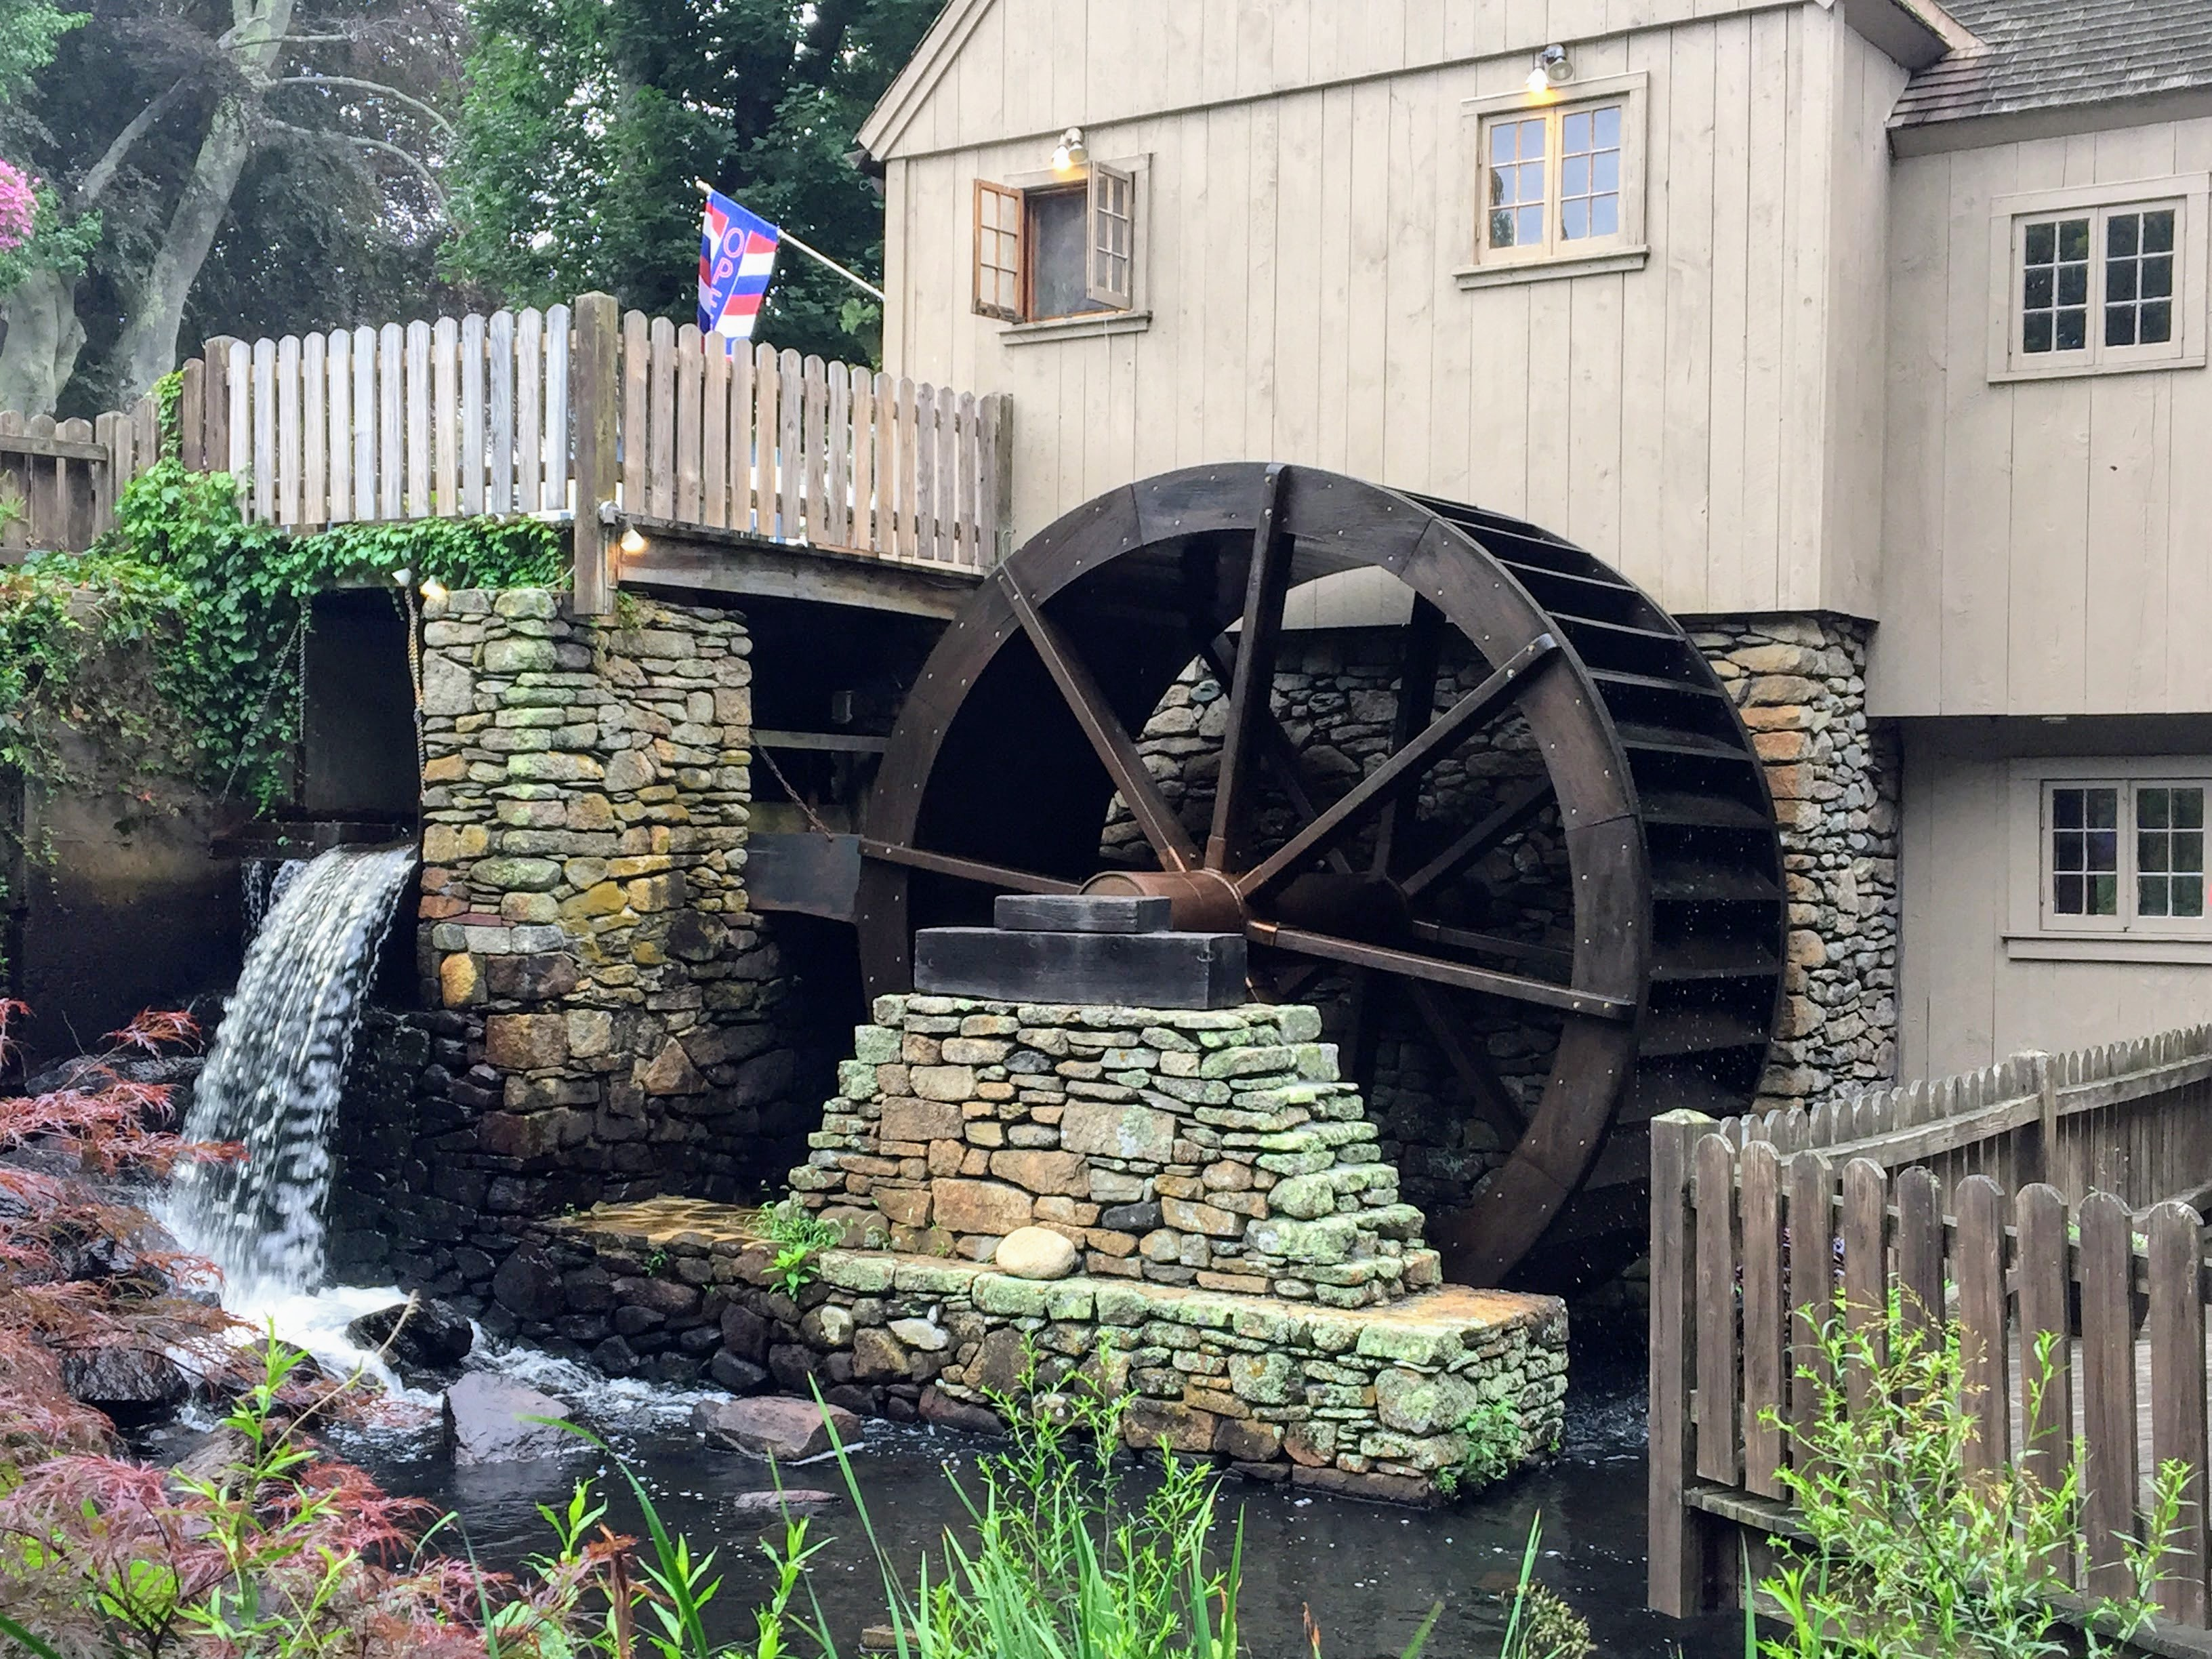 2017-07-13 Grist Mill 01